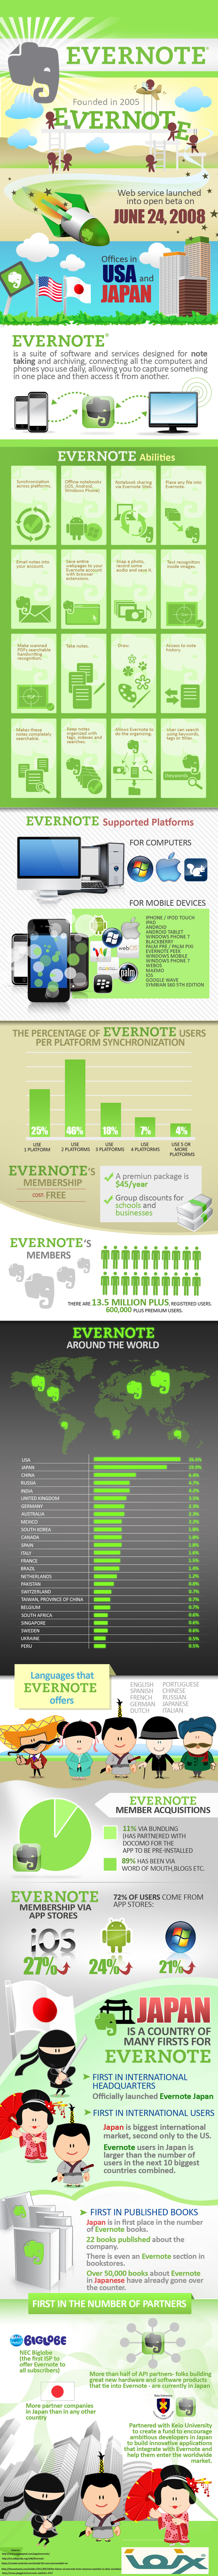 Evernote: An Infographic